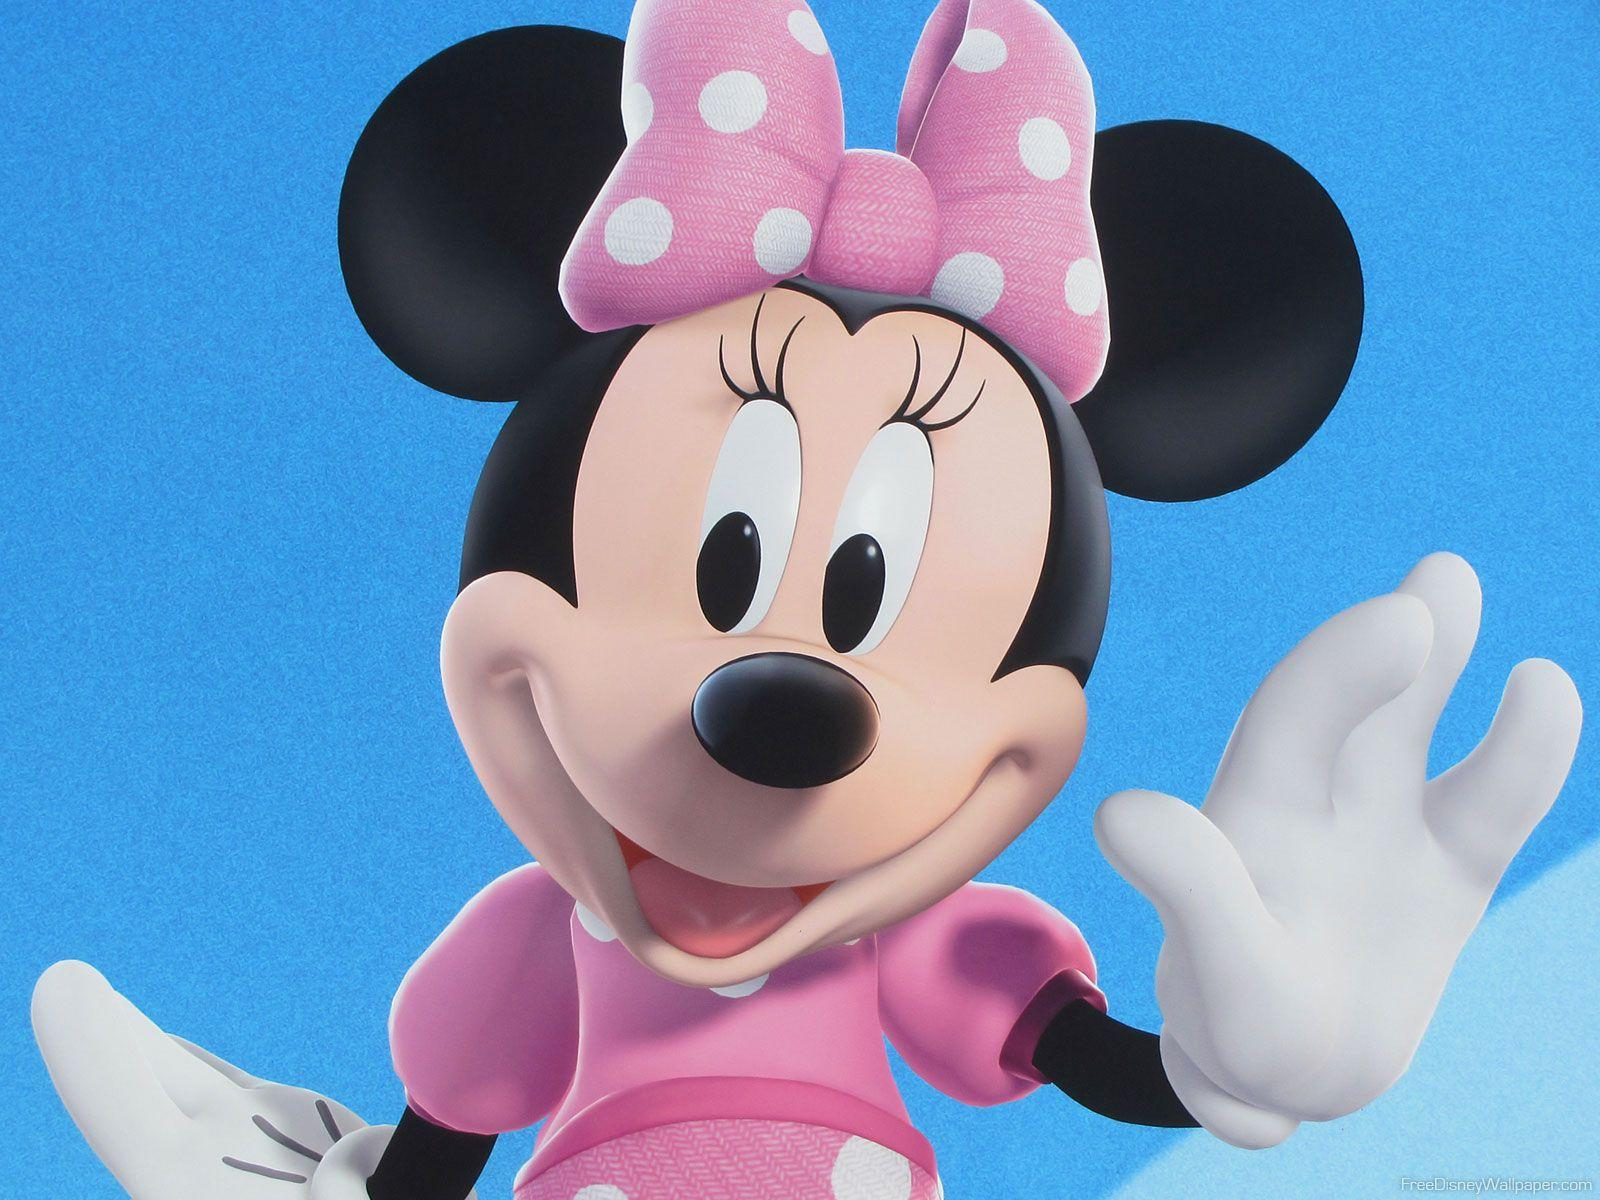 Disney Wallpapers – Free Disney Wallpapers » Minnie Mouse